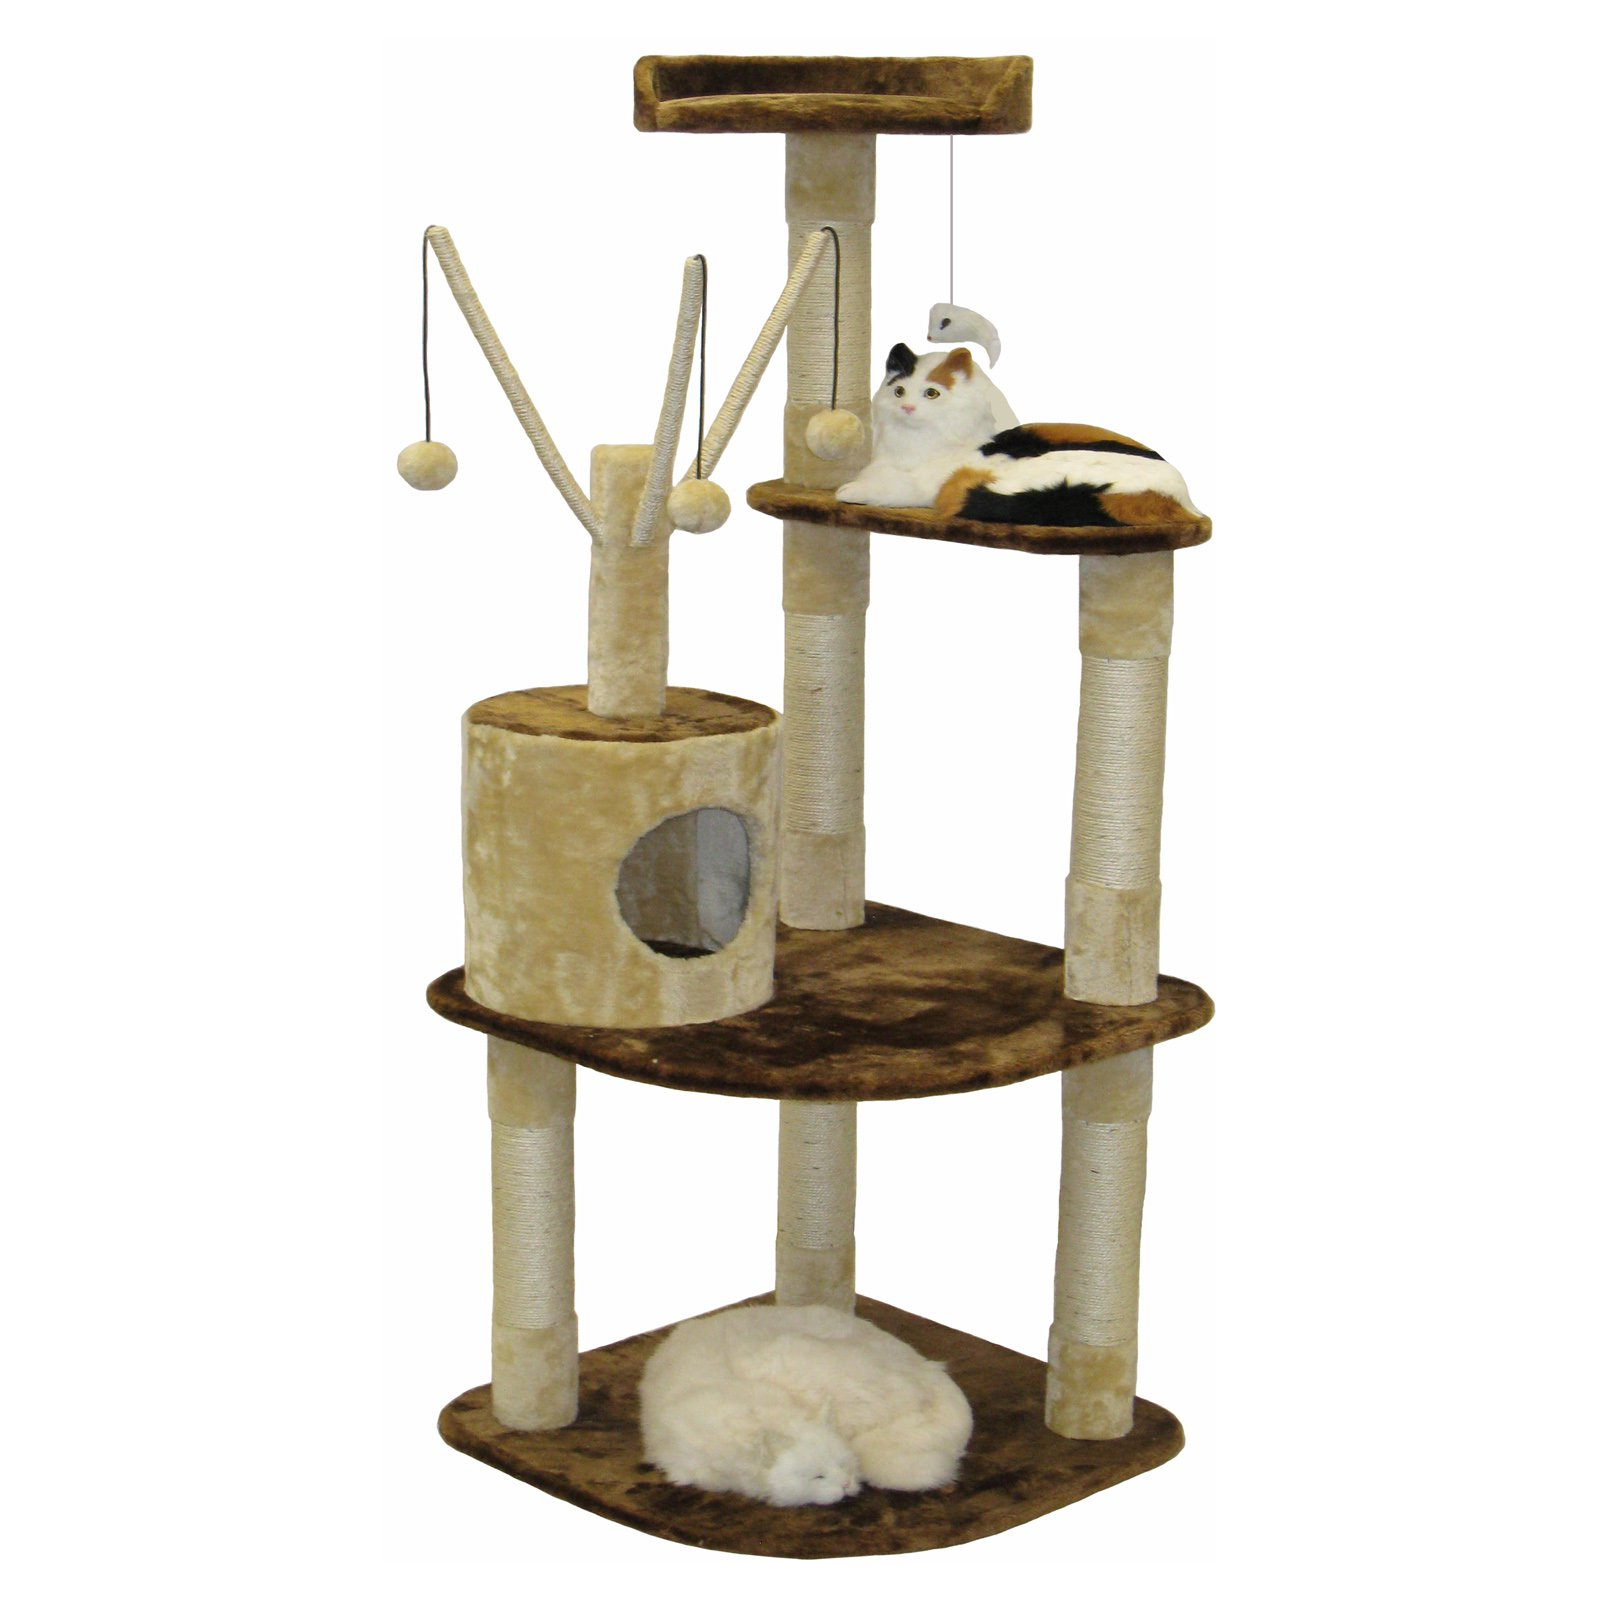 go pet club brown and beige cat climber furniture condo   in  - go pet club brown and beige cat climber furniture condo   in walmartcom